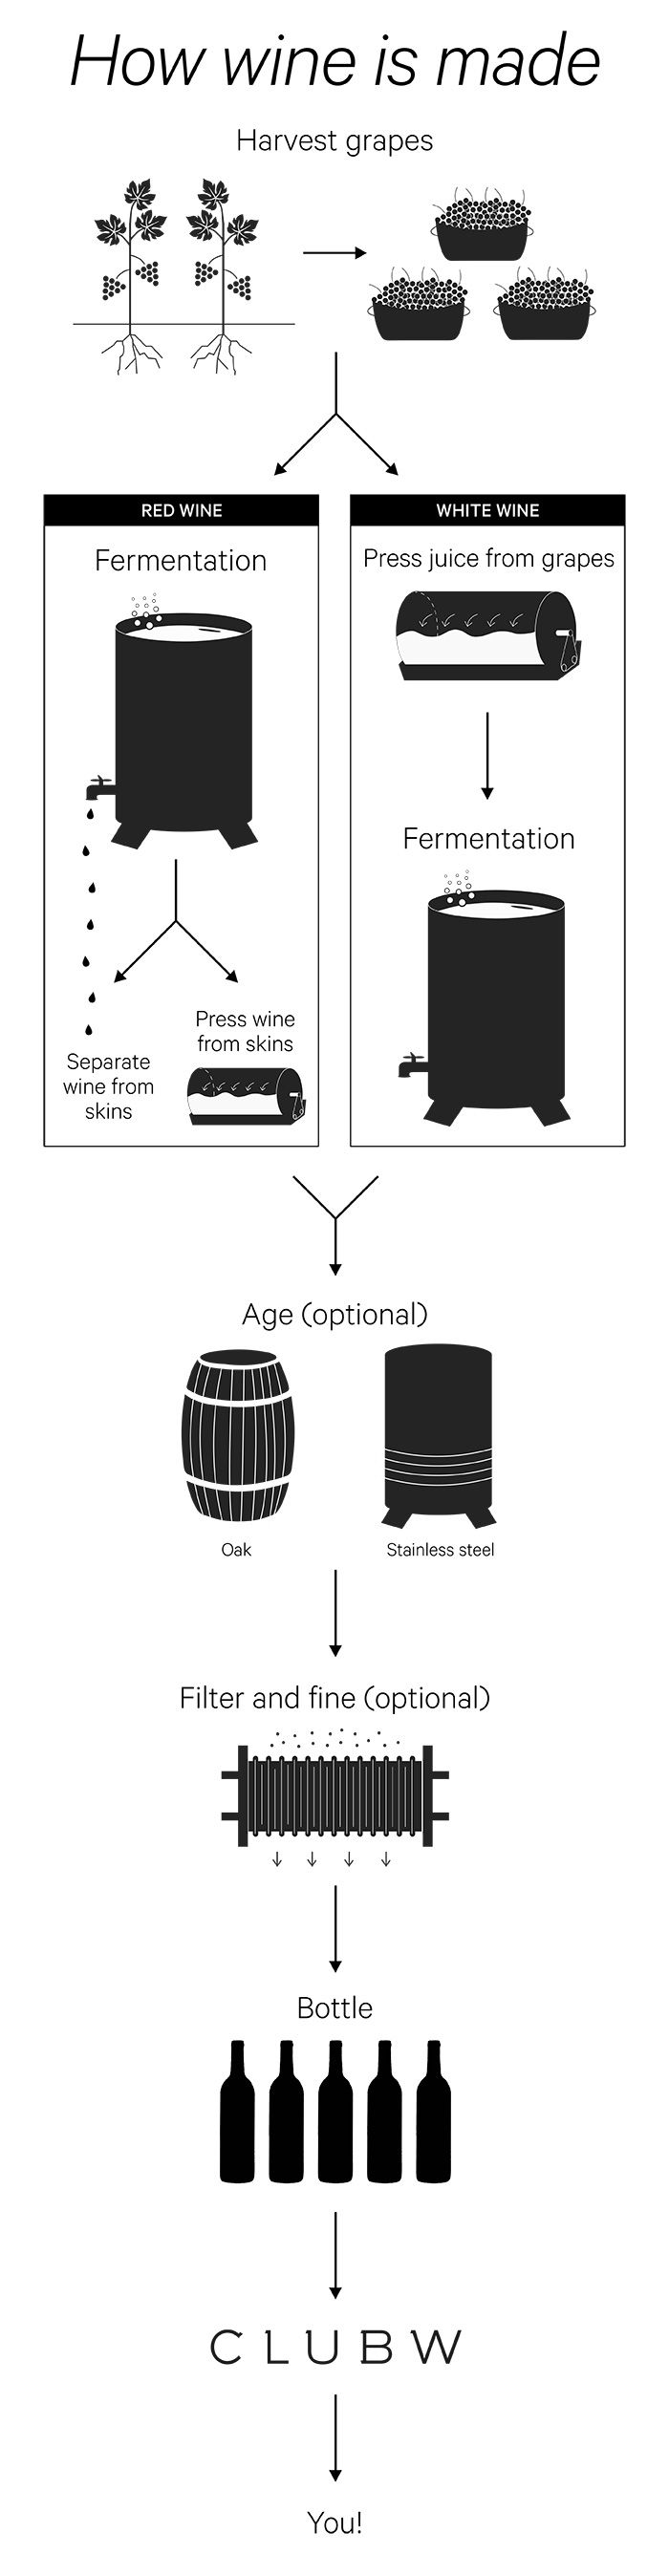 Infographic: How Wine Is Made - The Juice | Club W